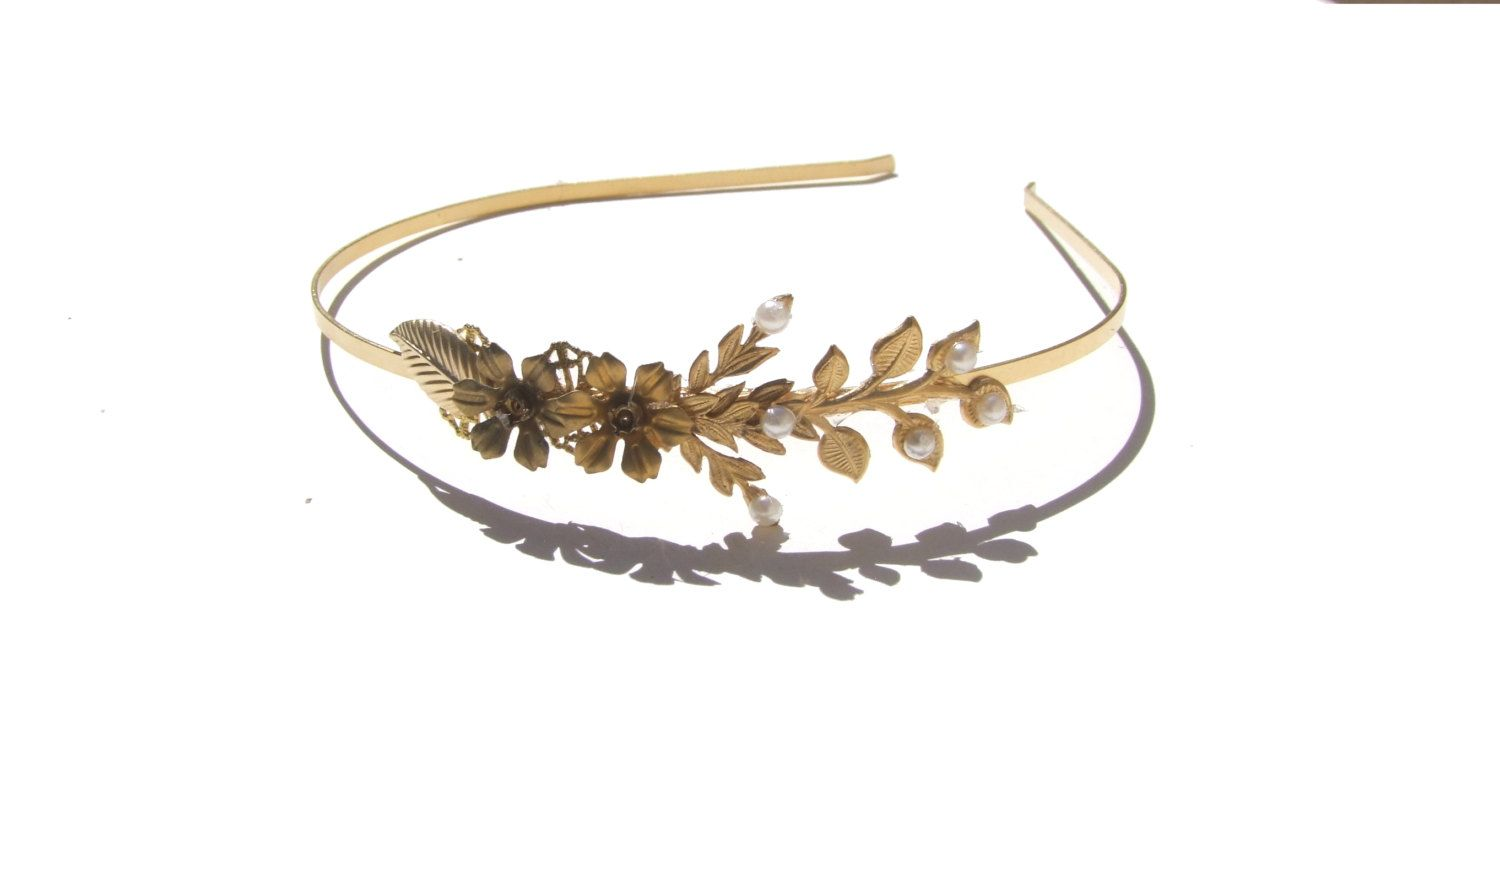 Bridal+Floral+Leaf+Crown+Wedding+Headpiece+Gold+by+YaelSteinberg,+$52.00